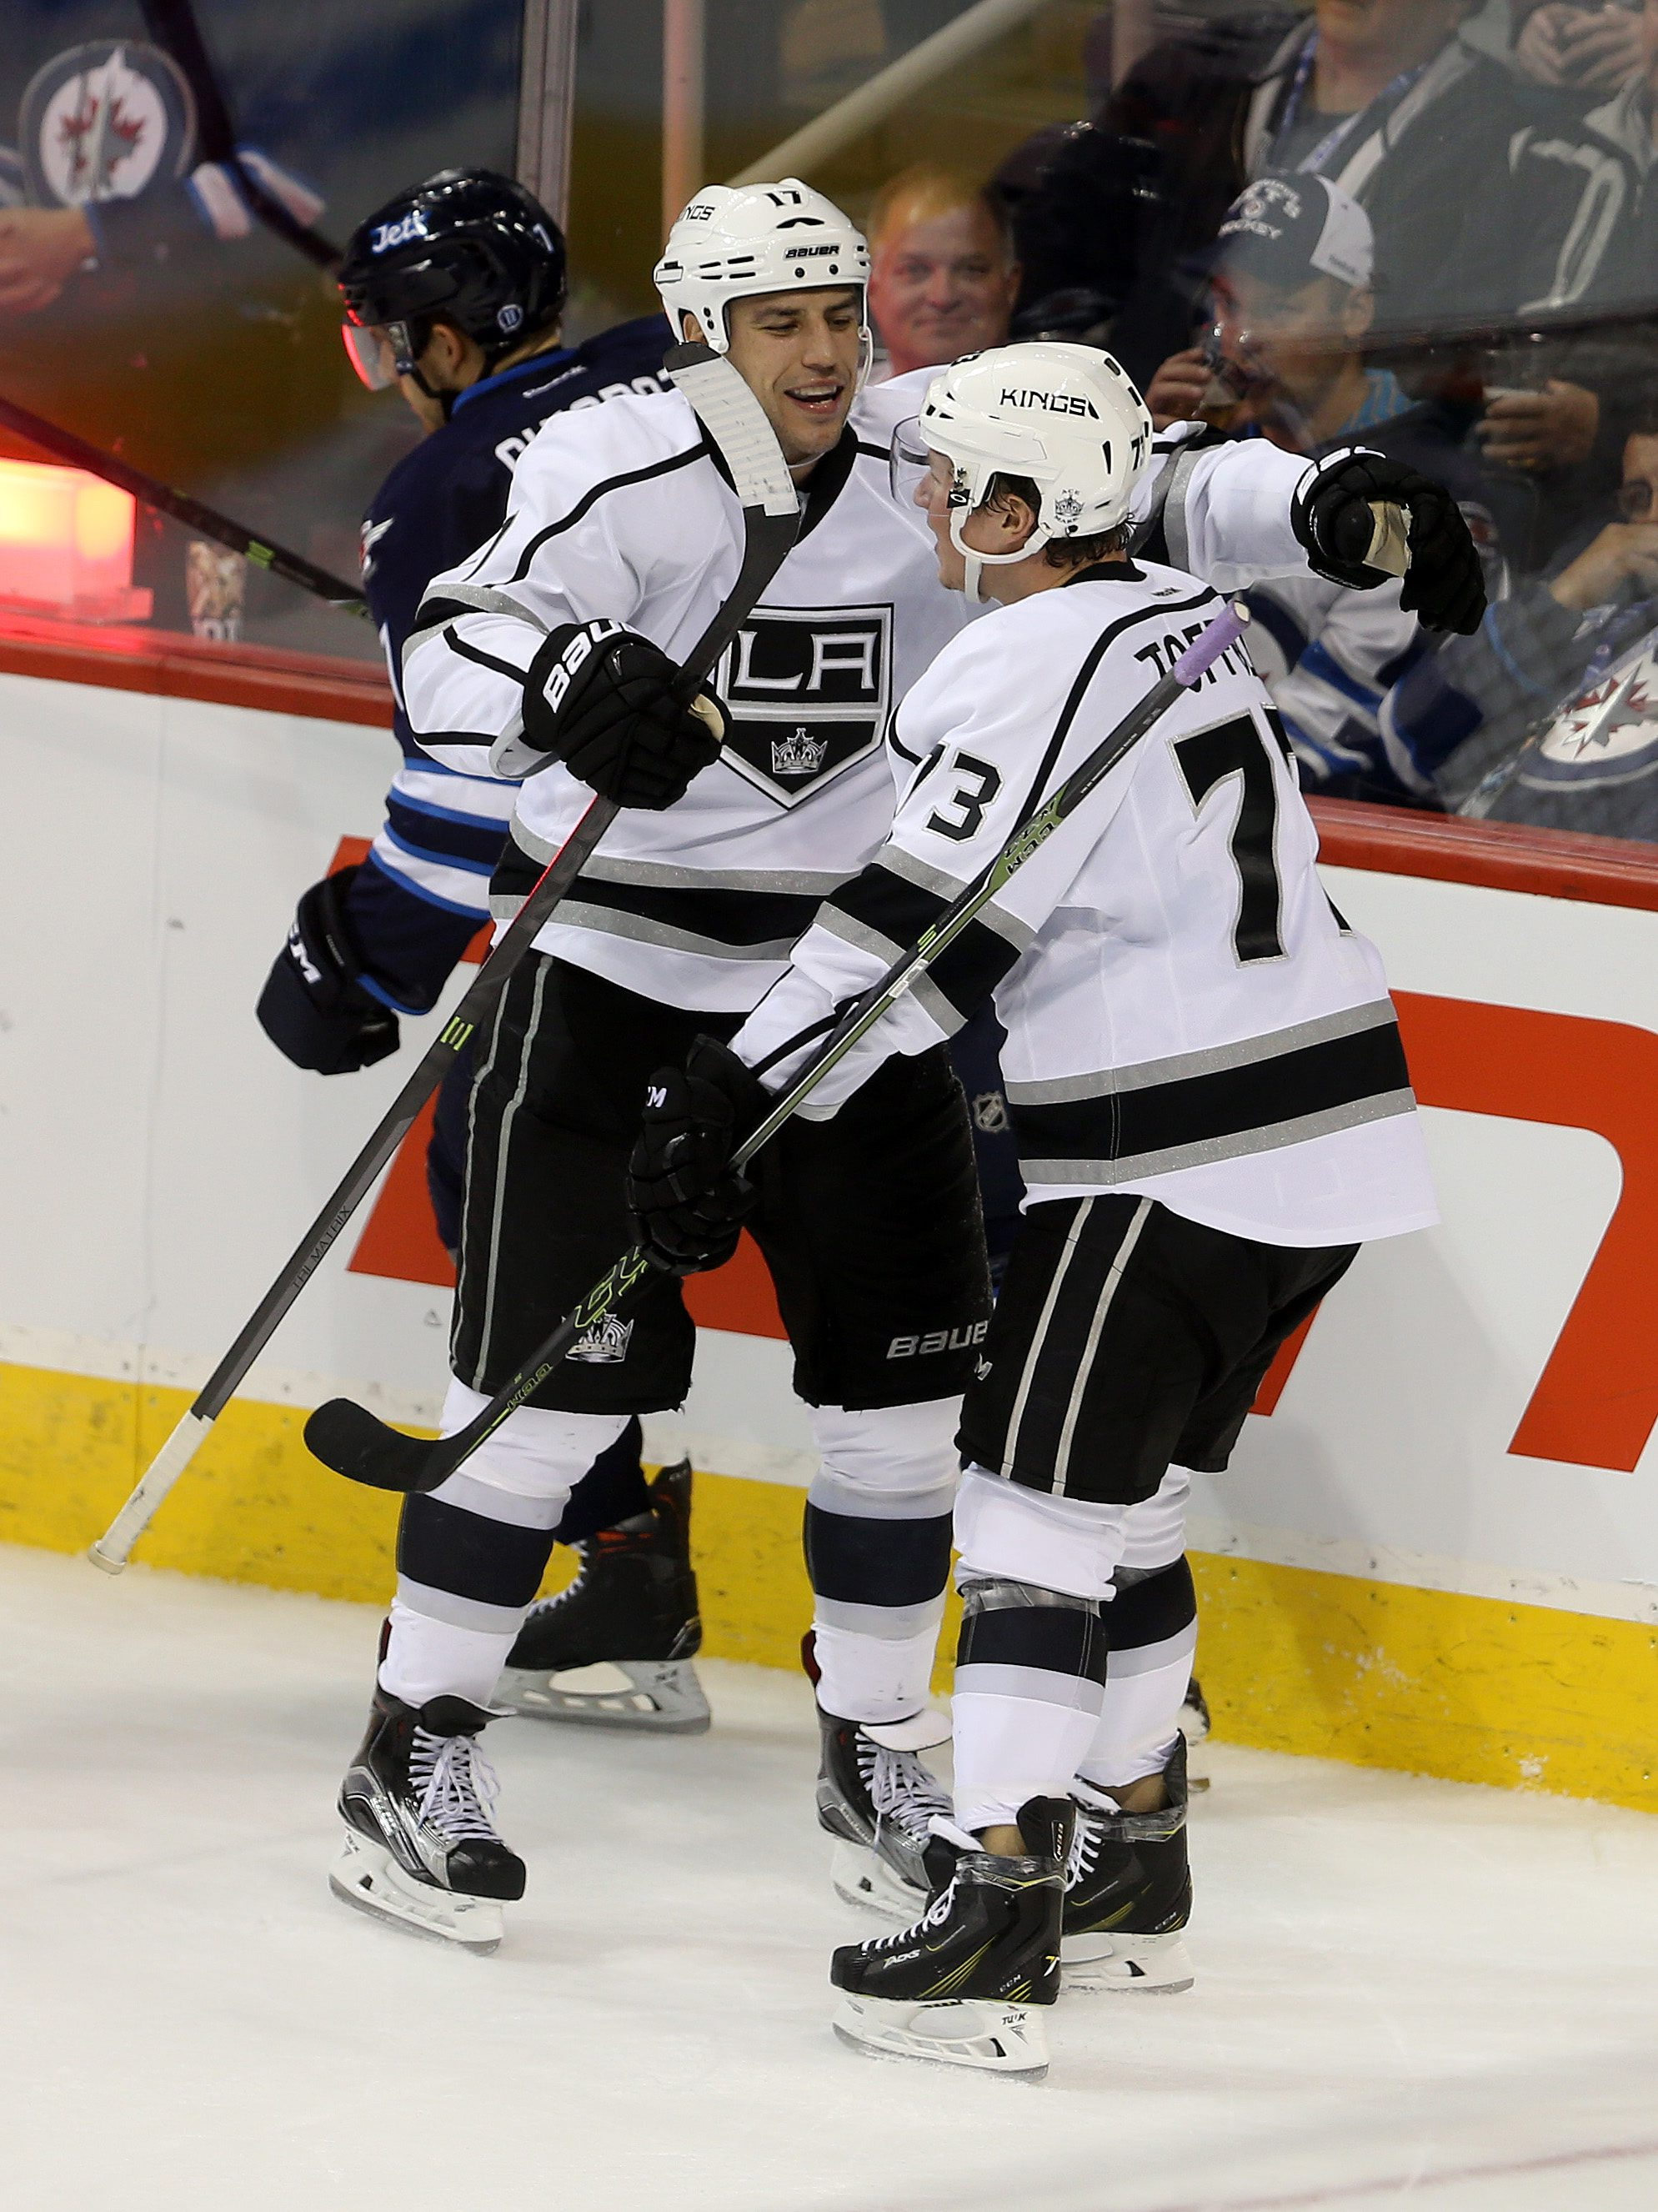 Los Angeles Kings' Milan Lucic (17) celebrates with teammate Tyler Toffoli (73), right, after Lucic scored on the Winnipeg Jets' during the third period of an NHL hockey game in Winnipeg, Manitoba Tuesday, Oct. 27, 2015. The Kings defeated Jets 4-1. (Trev